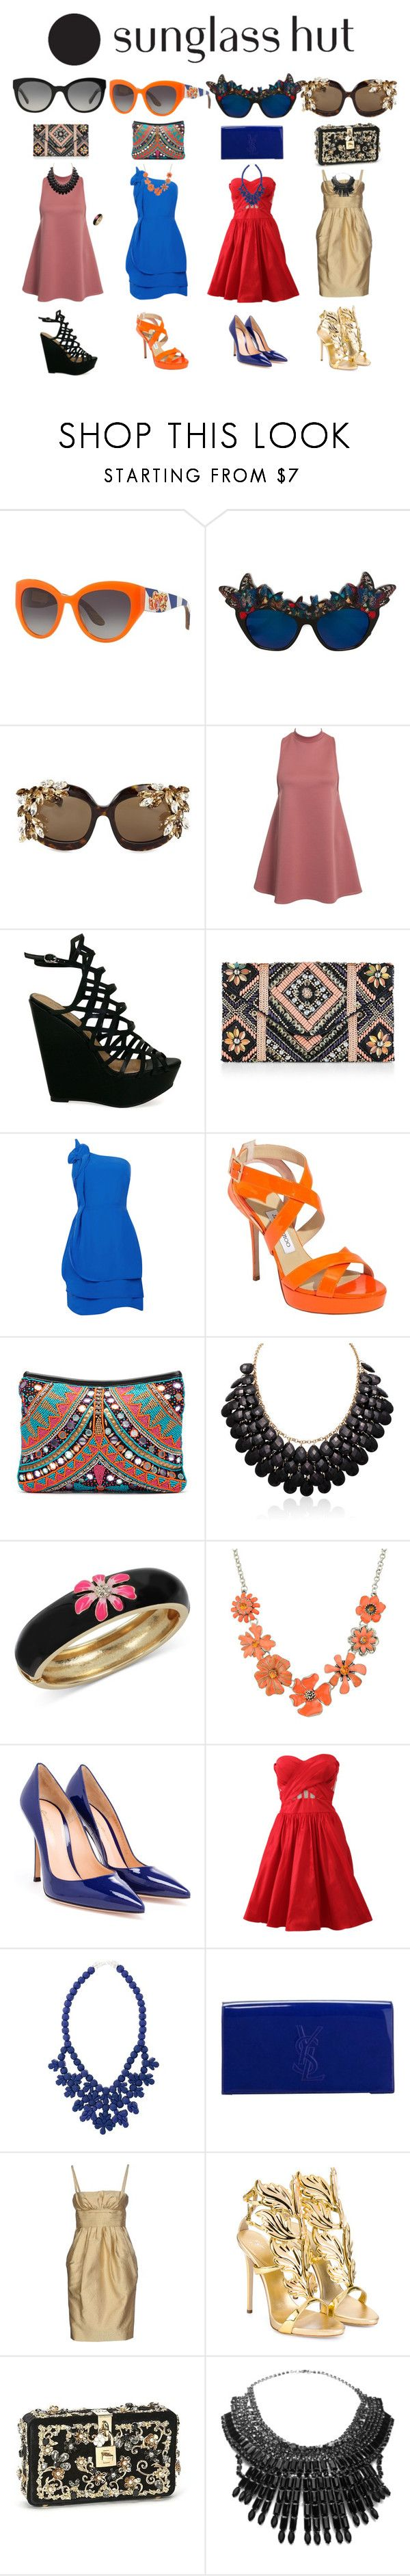 """""""Shades of You: Sunglass Hut Contest Entry"""" by susy-1697 ❤ liked on Polyvore featuring Dolce&Gabbana, Anna-Karin Karlsson, Dsquared2, New Look, Oasis, Jimmy Choo, Blue Pearl, Betsey Johnson, Shourouk and Gianvito Rossi"""